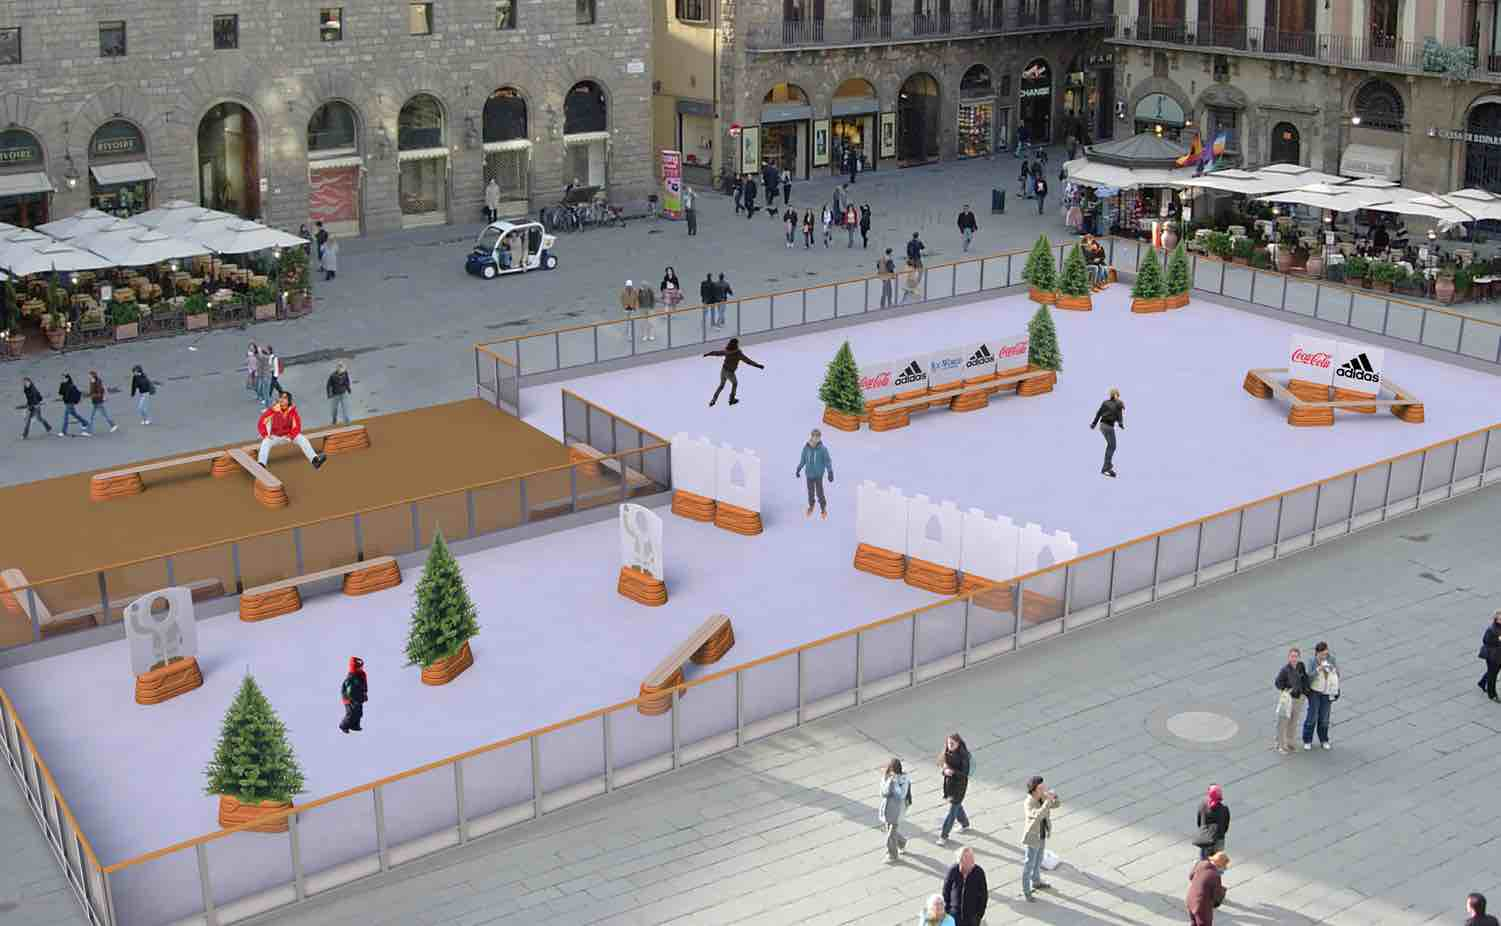 ice-america-accessories-the-base-dividers-standee-portable-ice-rink